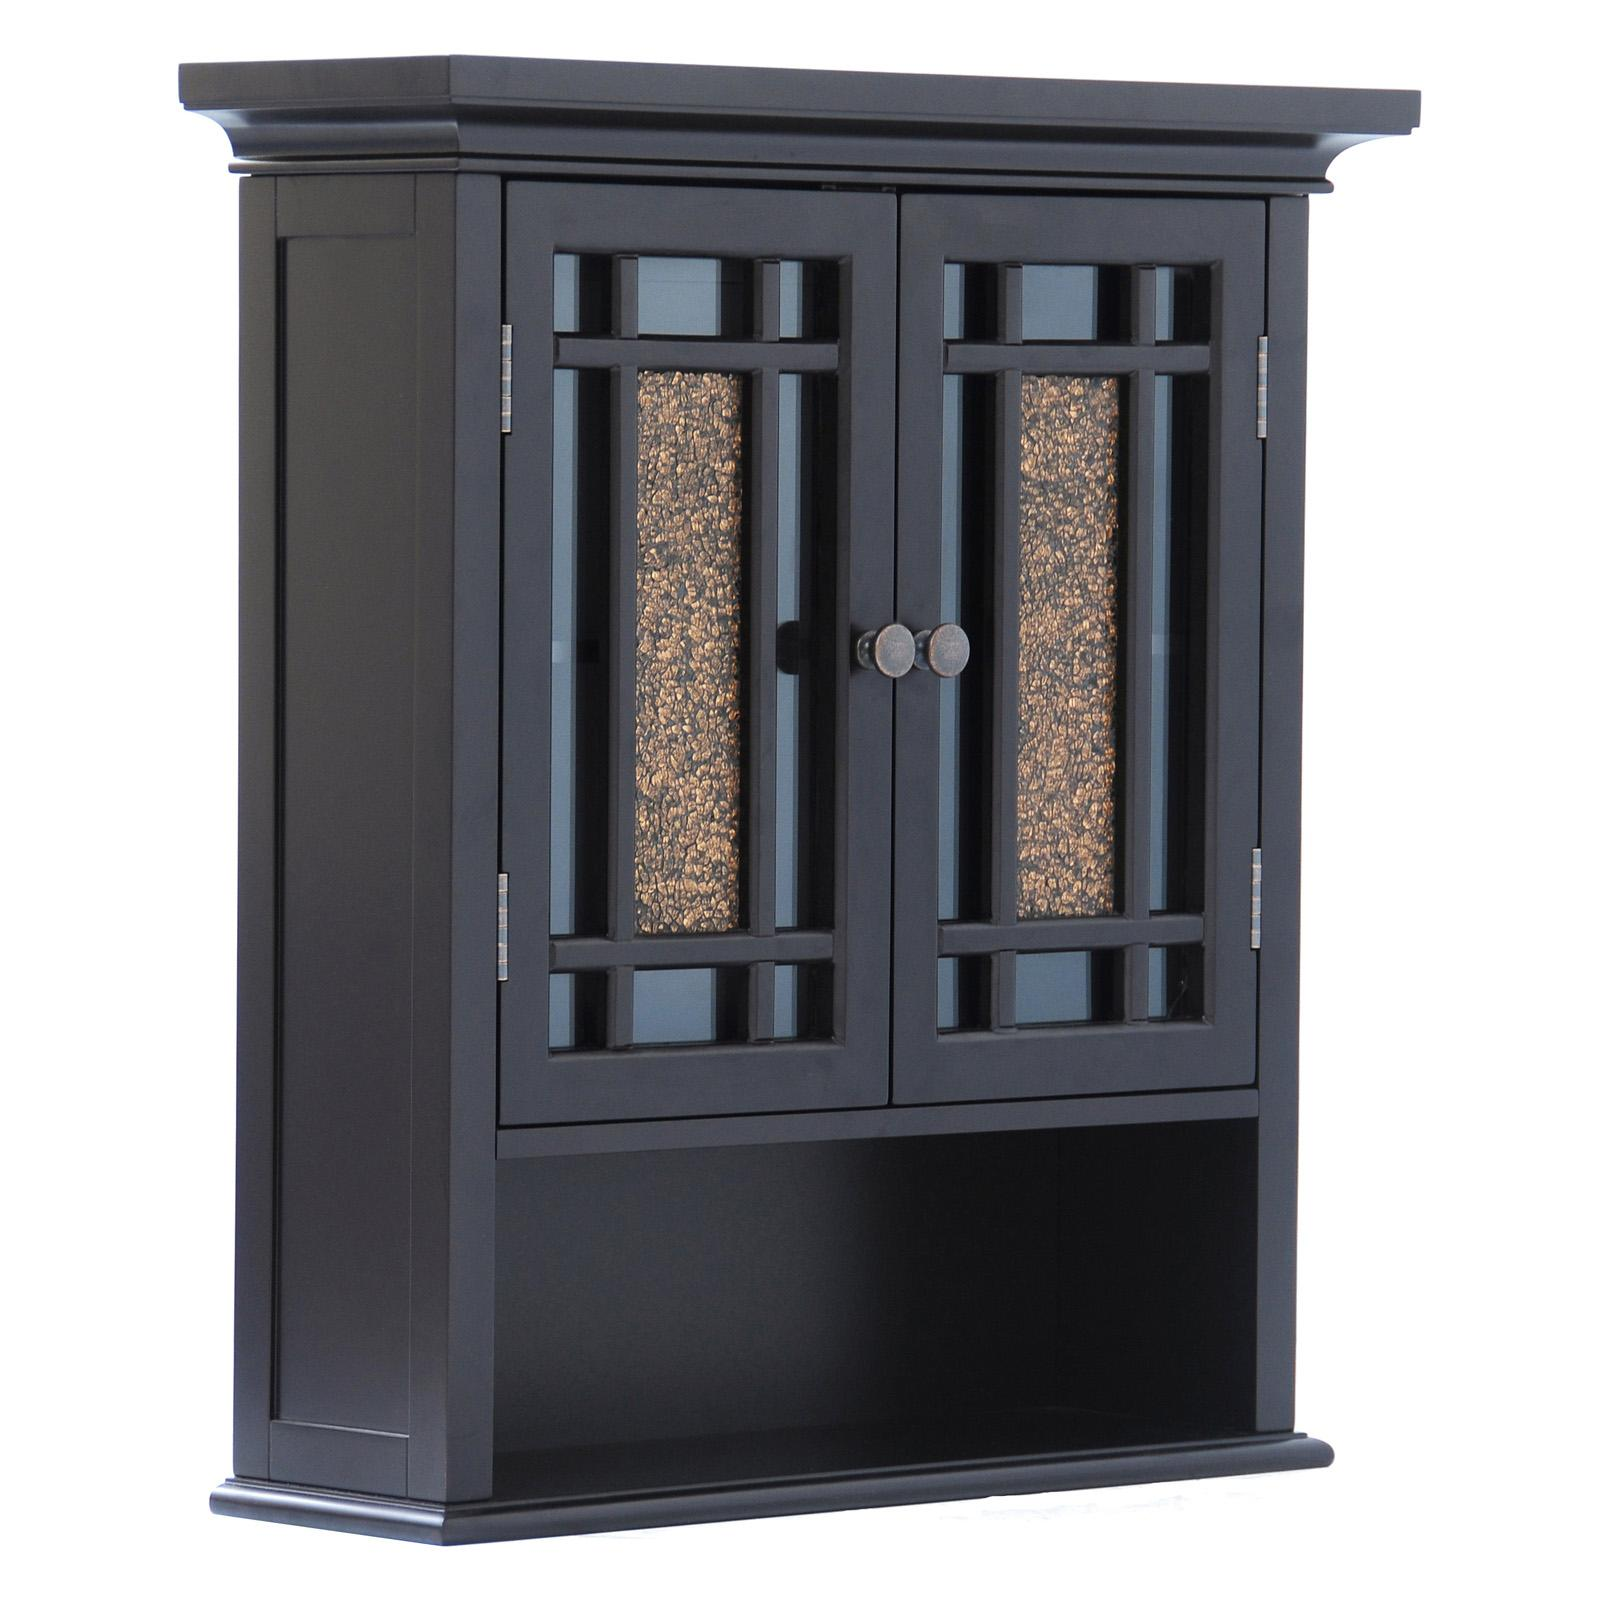 Elegant Home Windsor Espresso Bathroom Wall Cabinet With 2 Doors And 1 Shelf Ebay